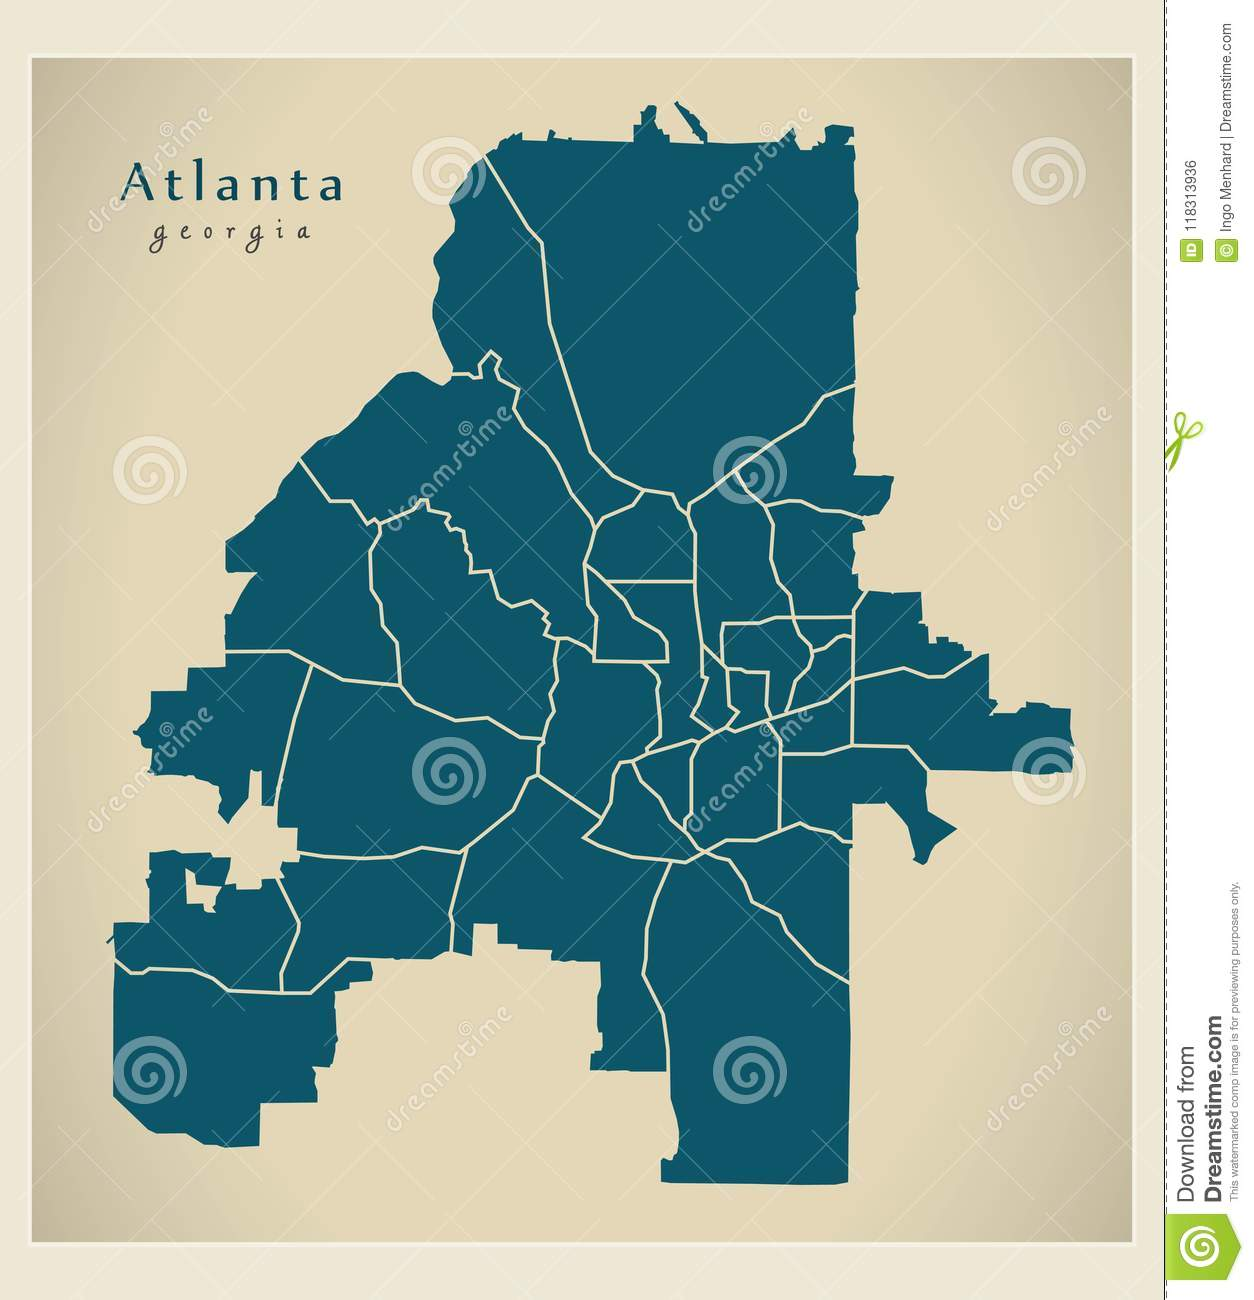 Modern City Map Atlanta Georgia City Of The Usa With Neighborhoods